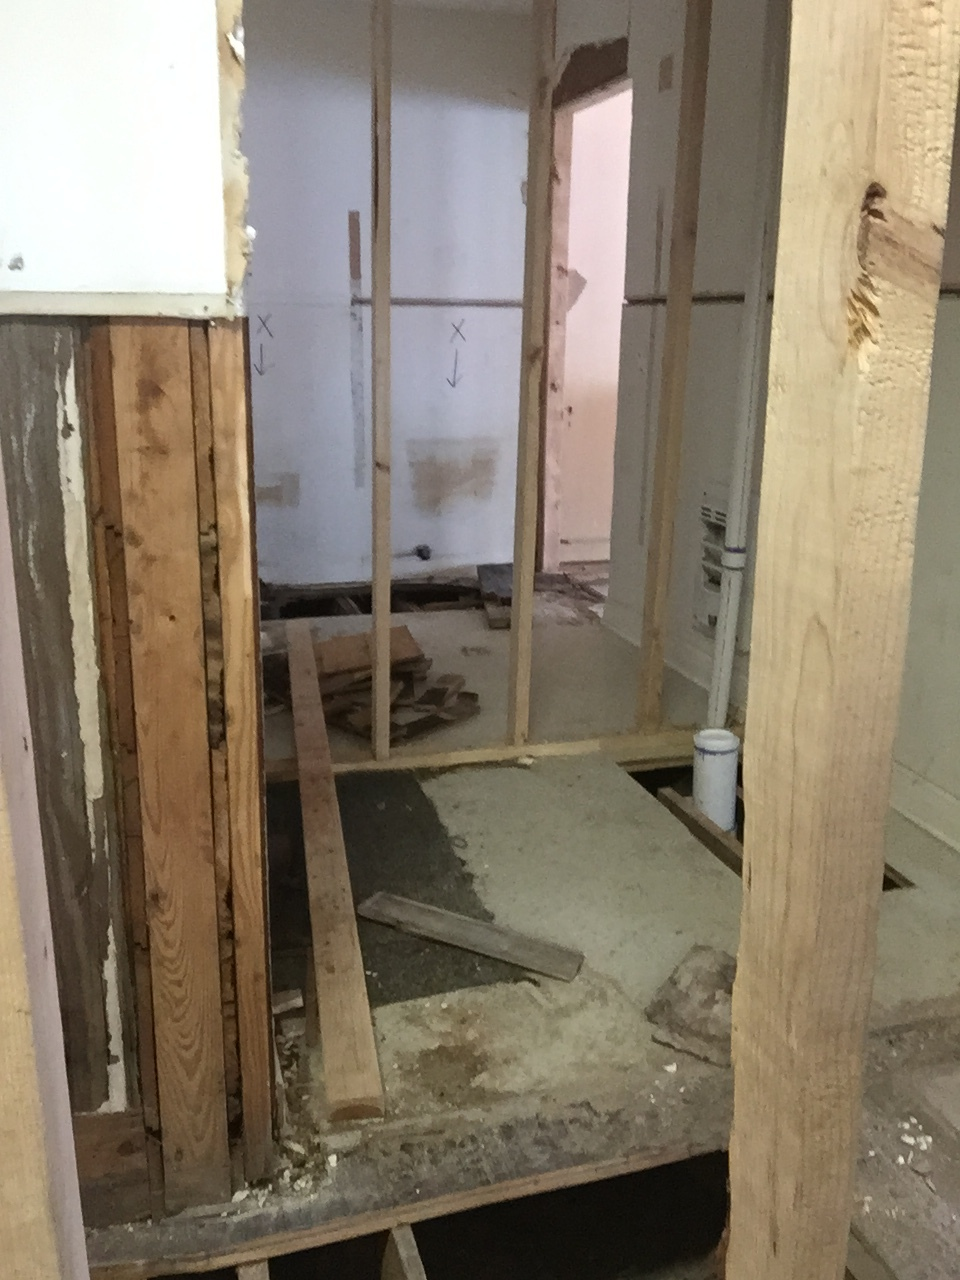 A peek into one of our new bathrooms.  You can see all new plumbing in the floor and a laundry in the background.